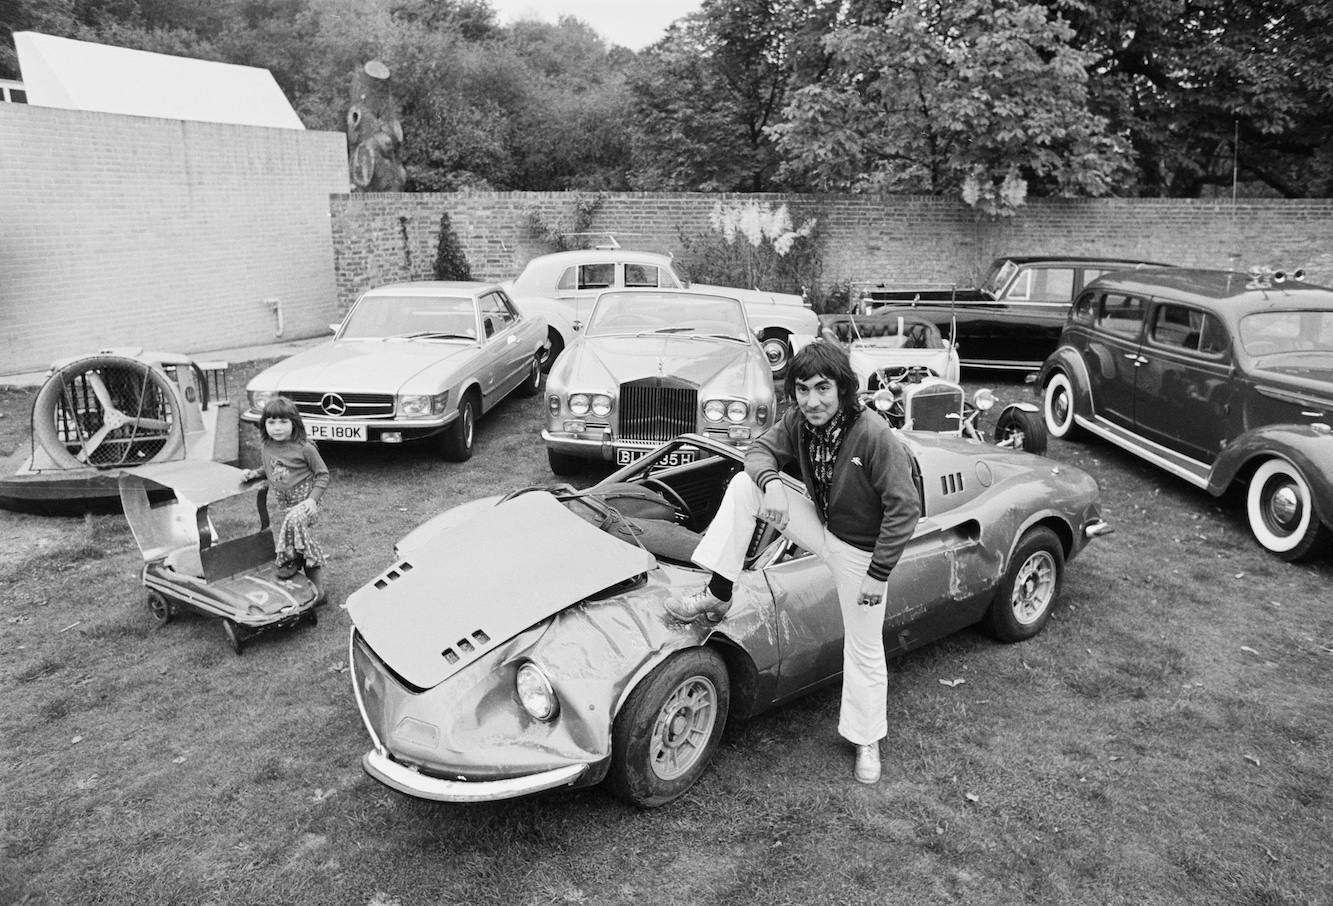 Drummer Keith Moon (1947 - 1978), of British rock group The Who at Tara, his home in Chersey, Surrey, with his daughter, Amanda (left), and some of the cars in his collection, 17th October 1972. Moon is sitting on a damaged Ferrari Dino. (Photo by Jack Kay/Daily Express/Hulton Archive/Getty Images)